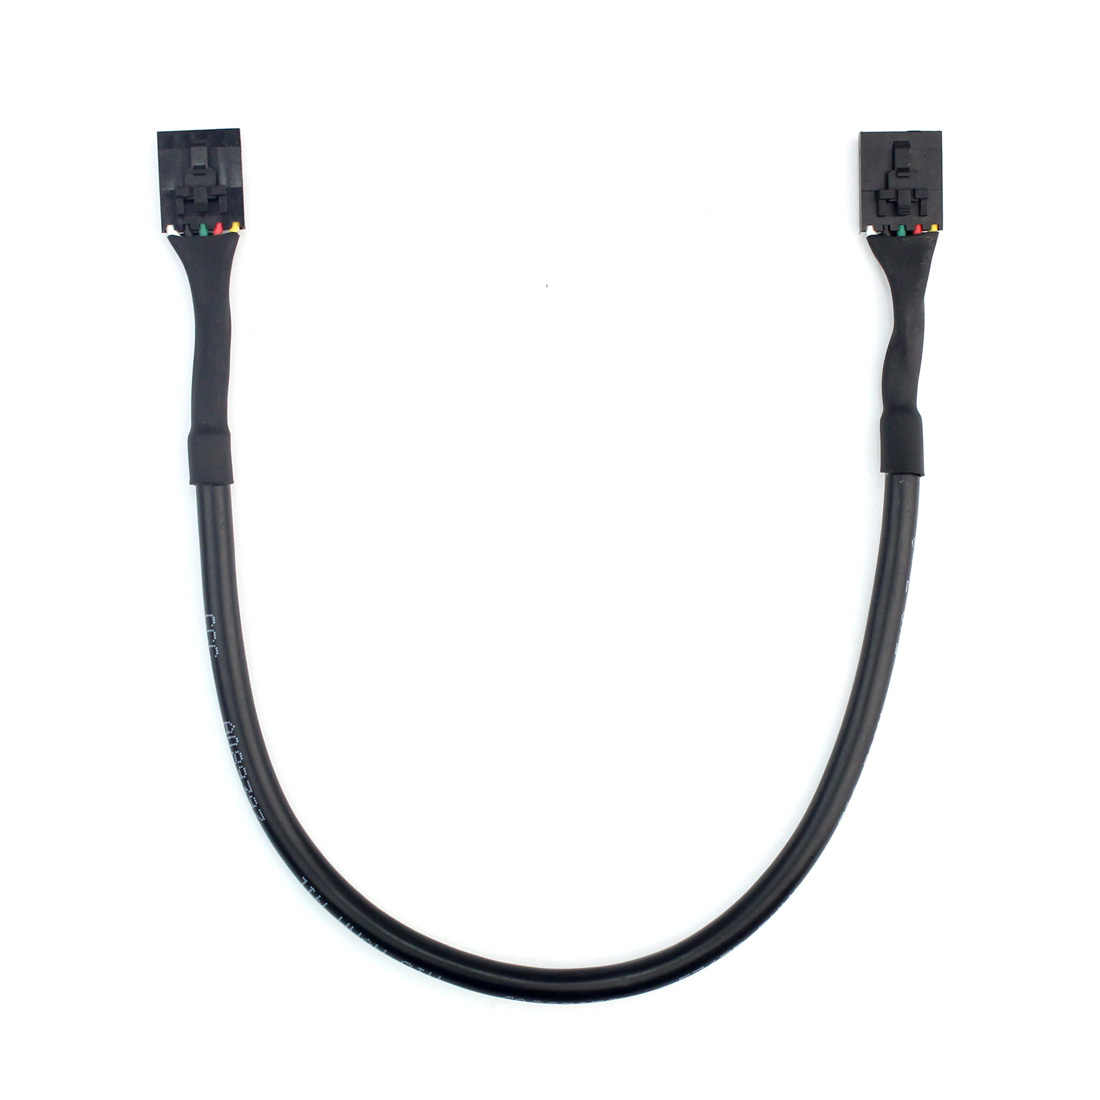 9 Series Miners 8 NEW AUC3 Cable 5-pin 40cm  for Avalon 7